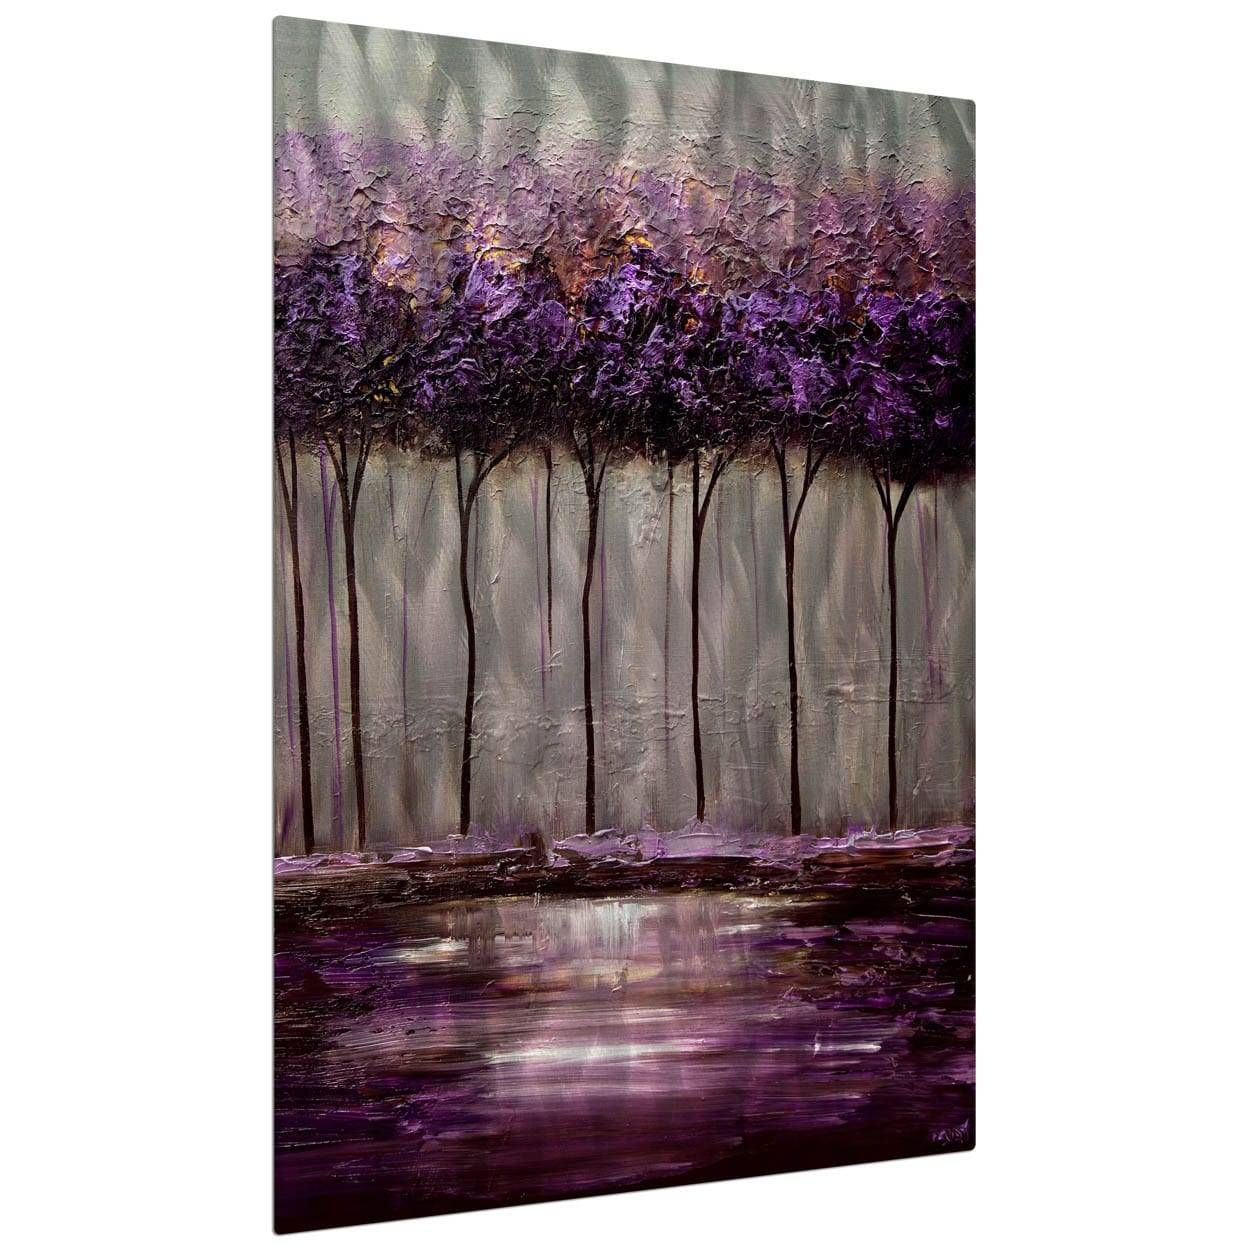 Osnat 'purple Scent 1' Metal Wall Art – Free Shipping Today For Recent Overstock Metal Wall Art (Gallery 16 of 20)